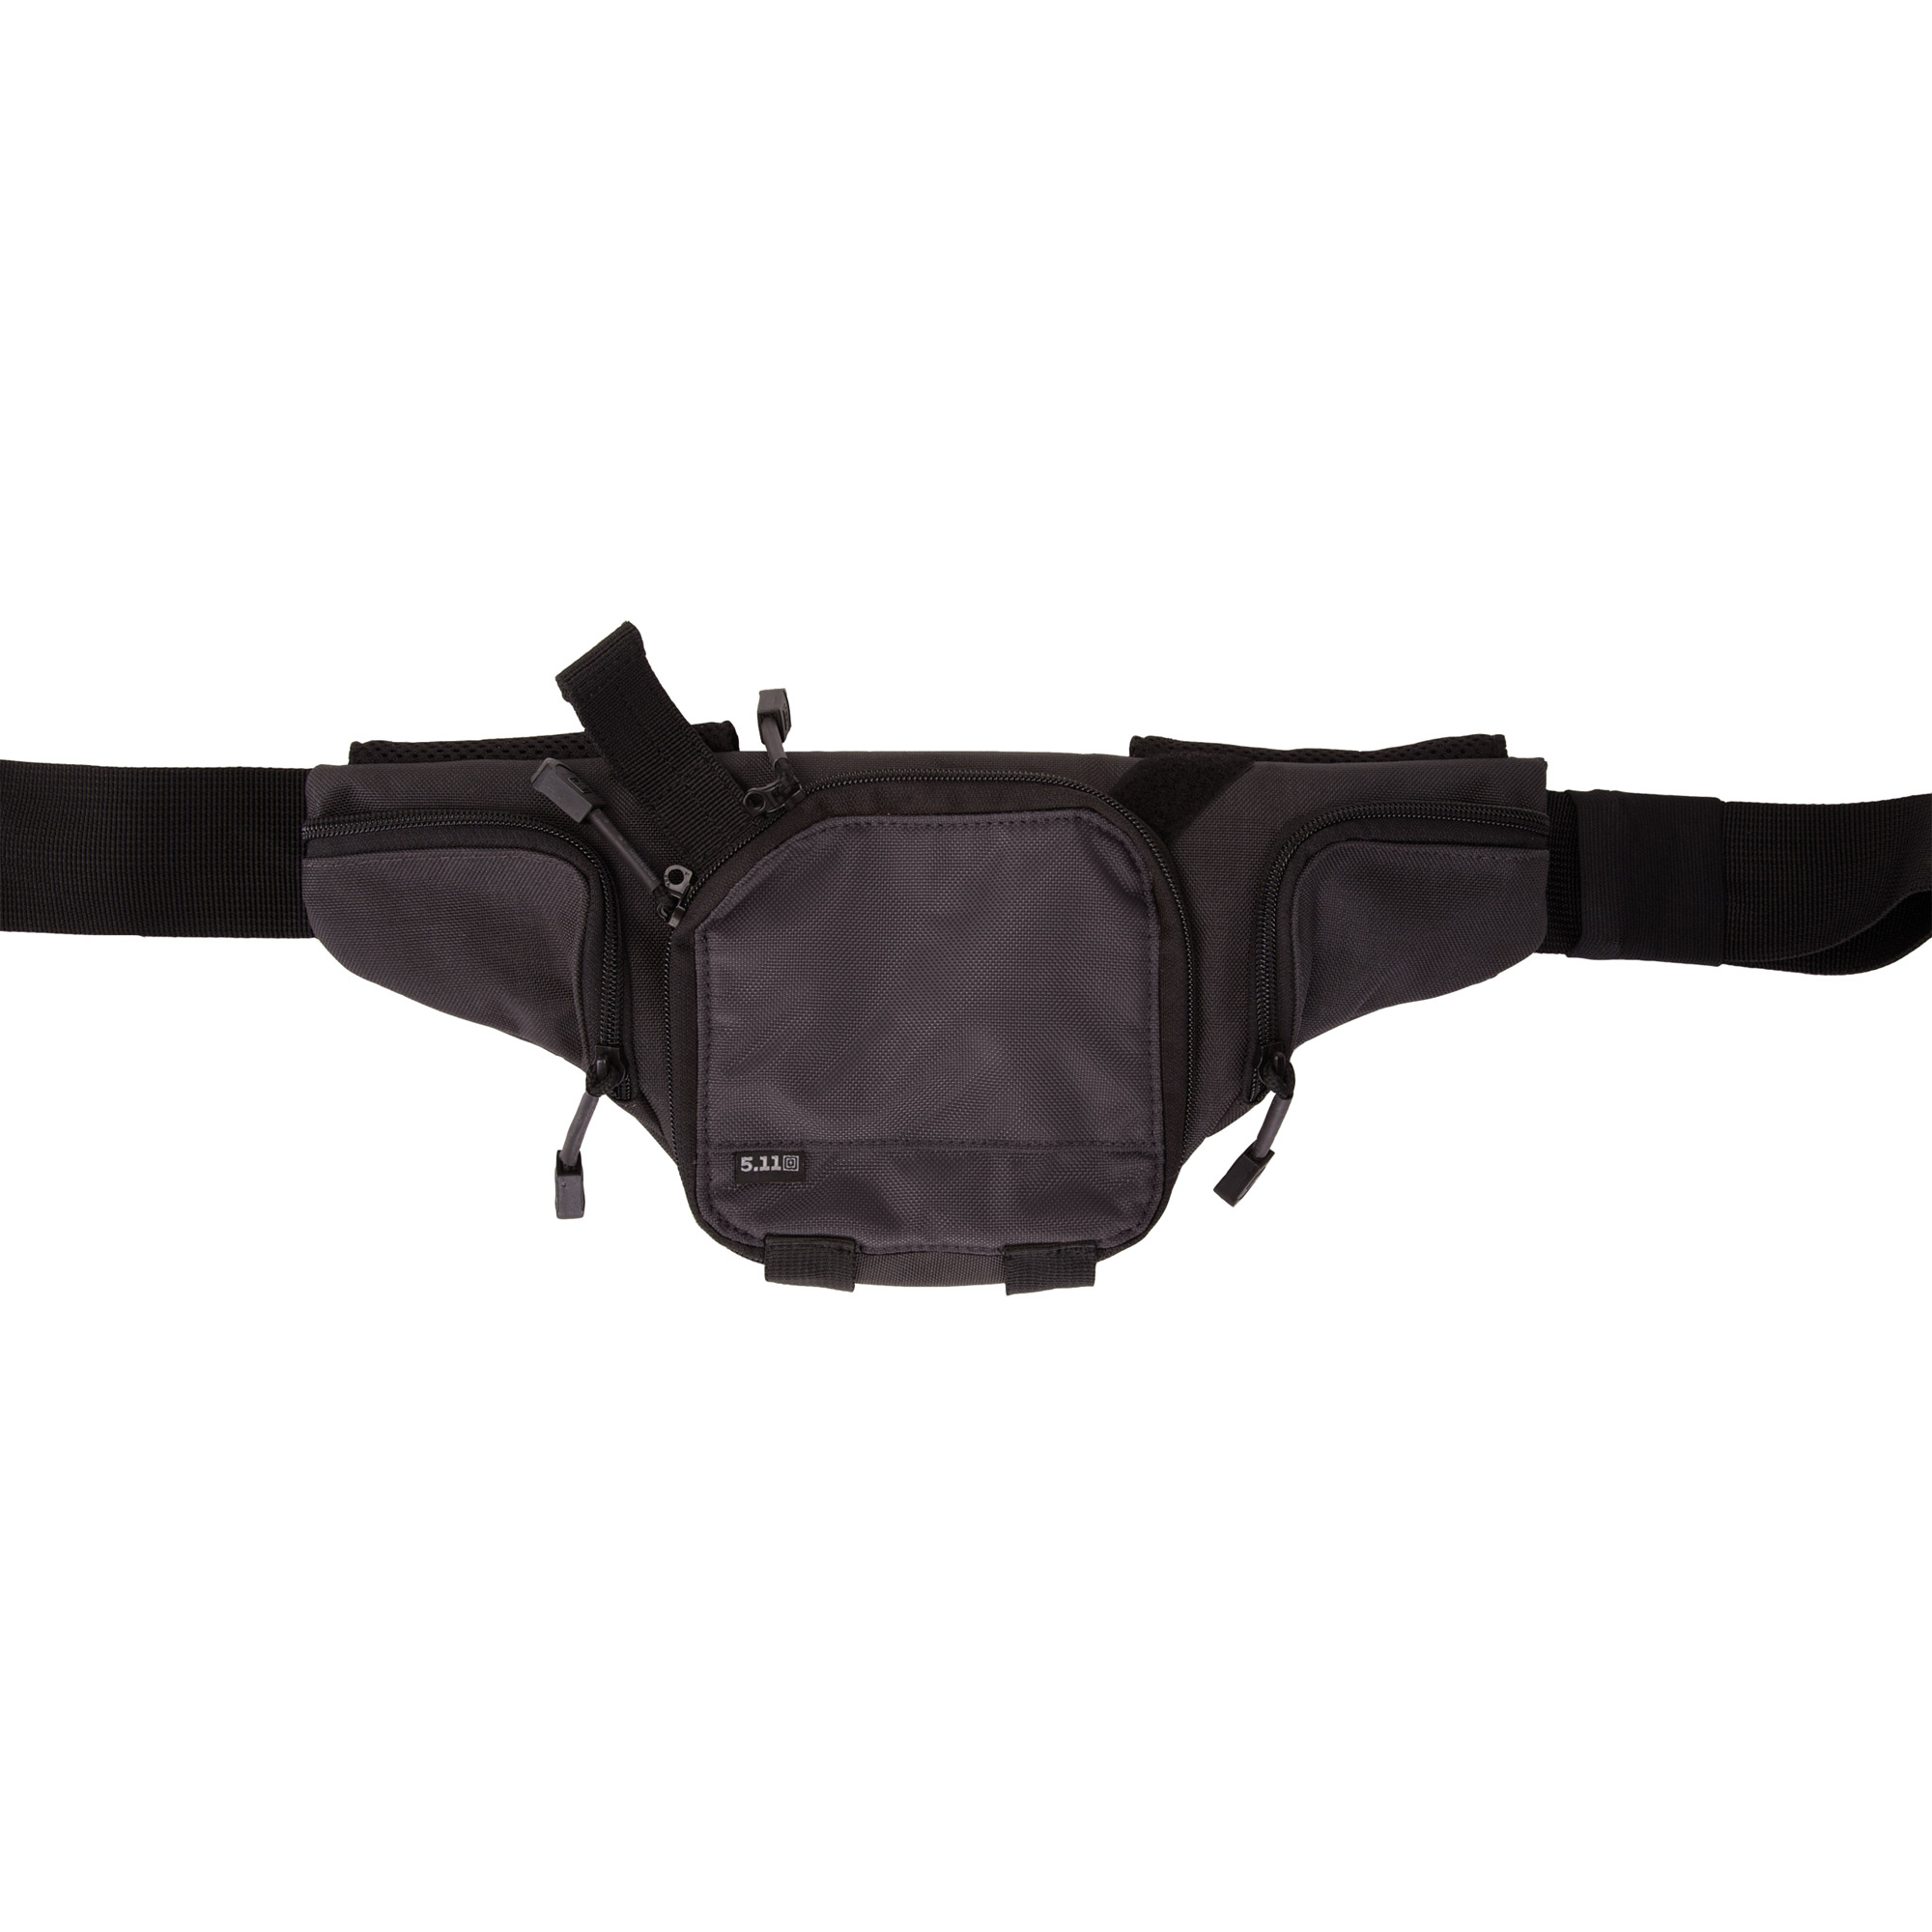 118a140dffae Concealed Carry Fanny Pack Pistol Pouch - 5.11 Tactical